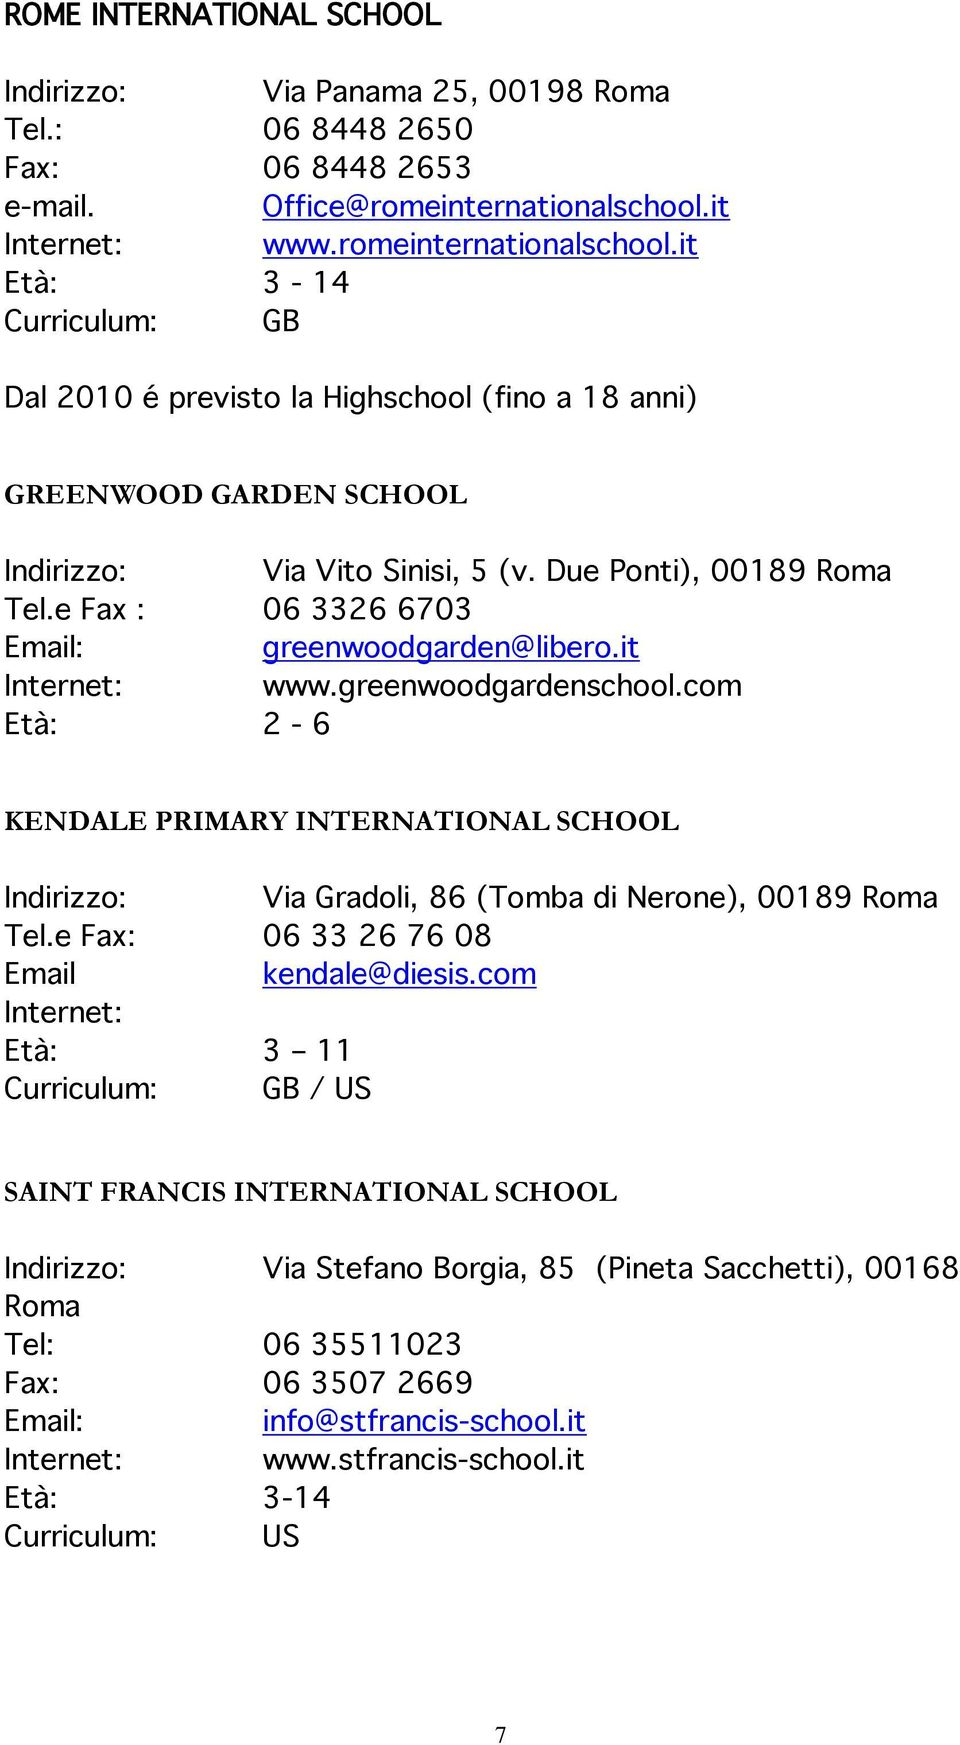 Fax : 06 3326 6703 grnwoodgardn@libro.it Intrnt: www.grnwoodgardnschool.com Età: 2-6 KENDALE PRIMARY INTERNATIONAL SCHOOL Indirizzo: Via Gradoli, 86 (Tomba di Nron), 00189 Roma Tl.